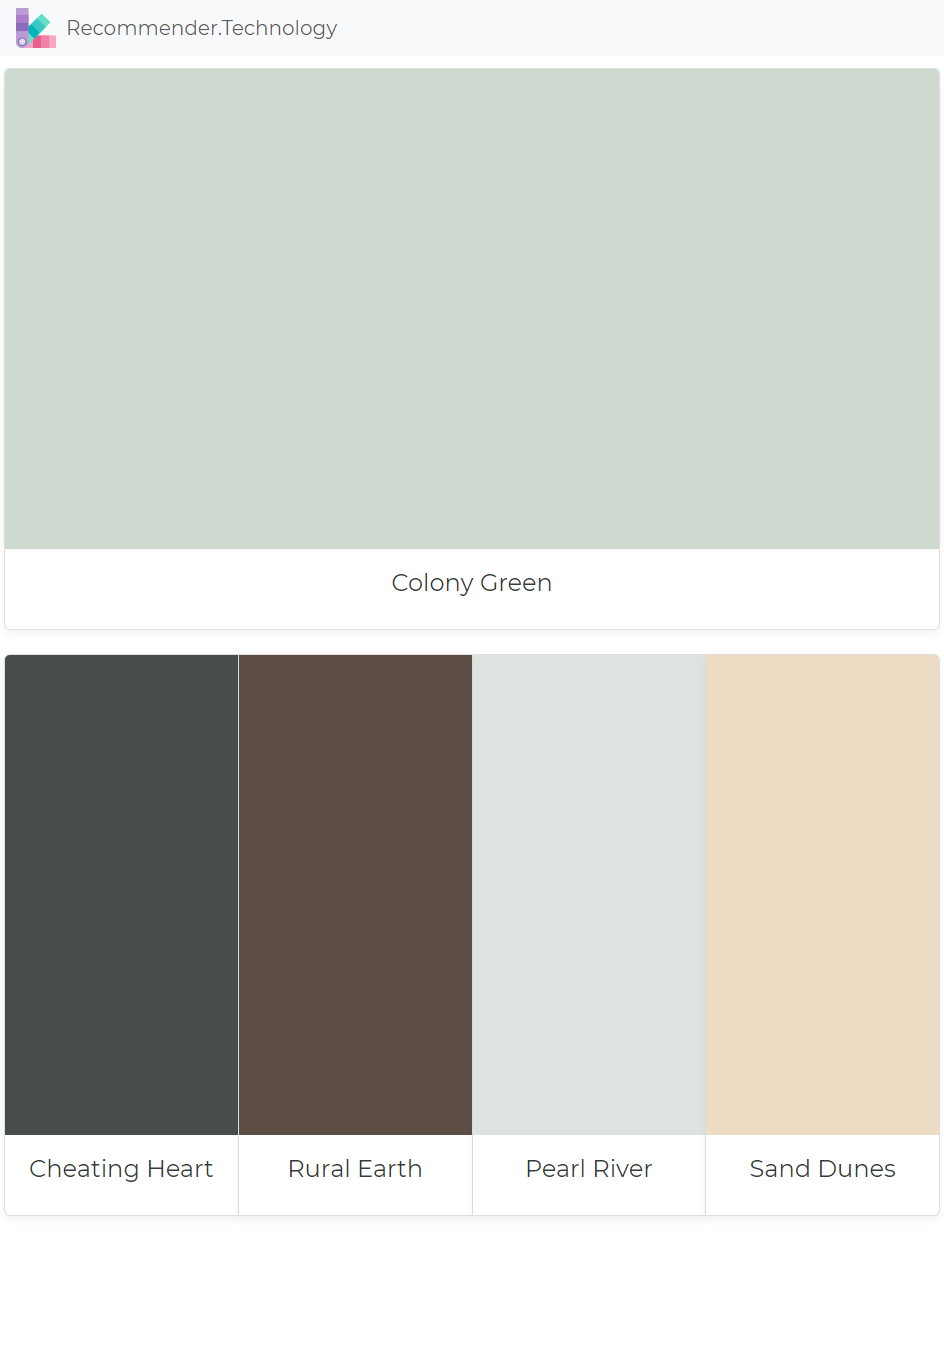 Colony Green Cheating Heart Rural Earth Pearl River Sand Dunes Paint Colors Benjamin Moore Paint Color Palettes Perfect Paint Color